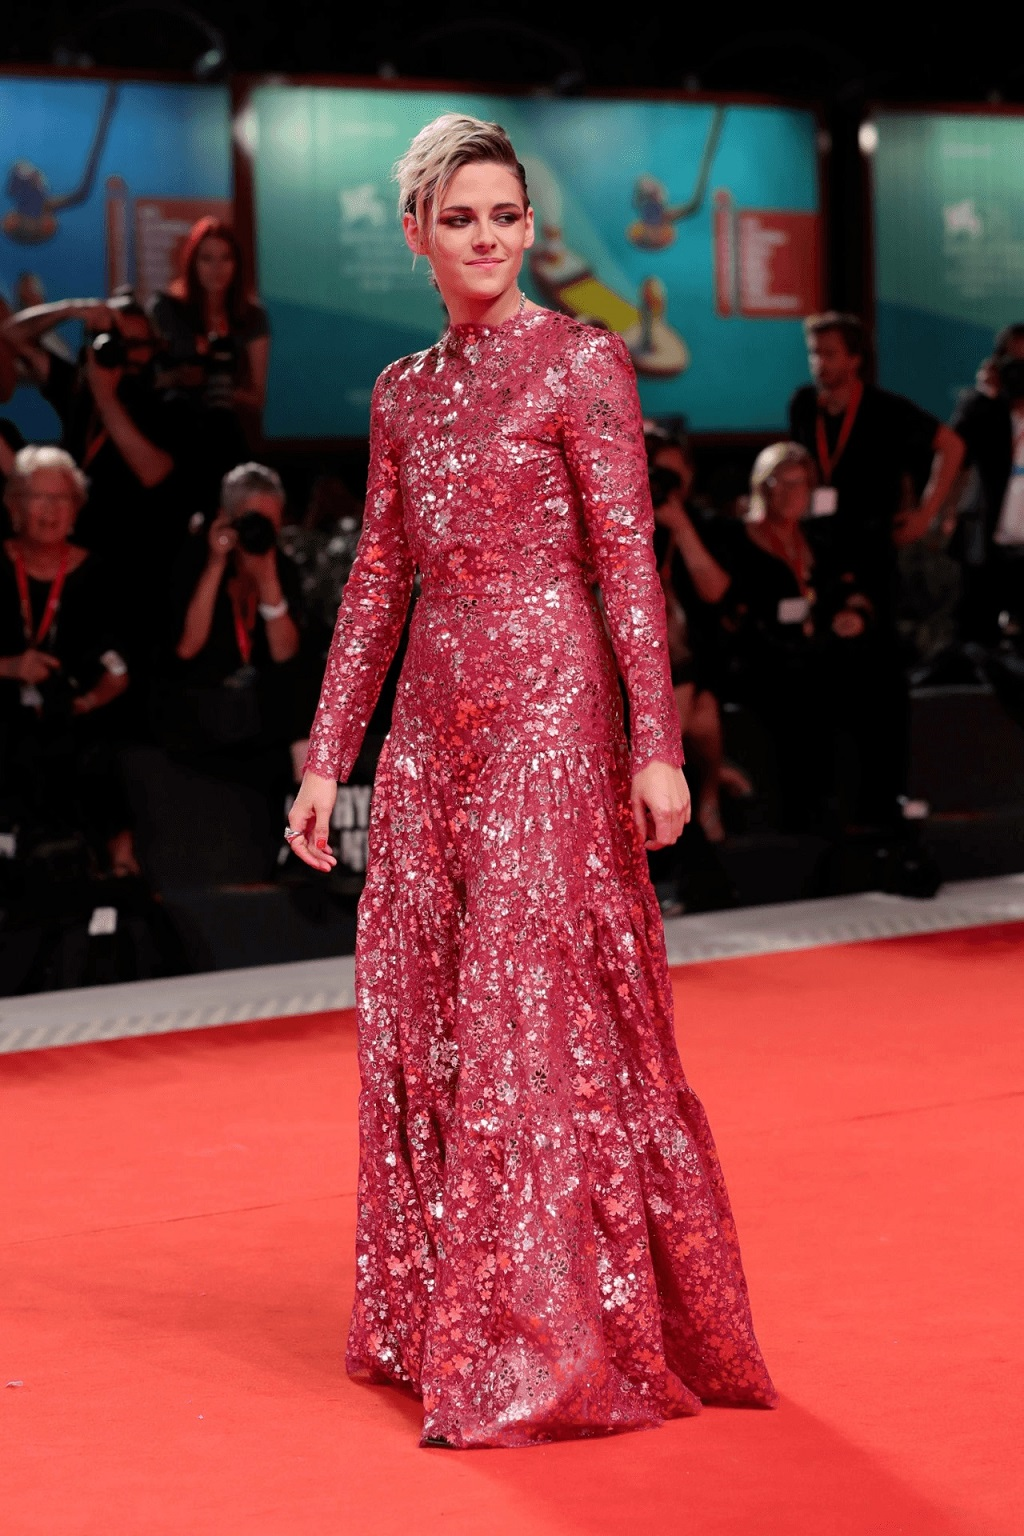 Kristen Stewart dazzles in Chanel Couture at the 2019 Venice Film Festival 'Seberg' Premiere